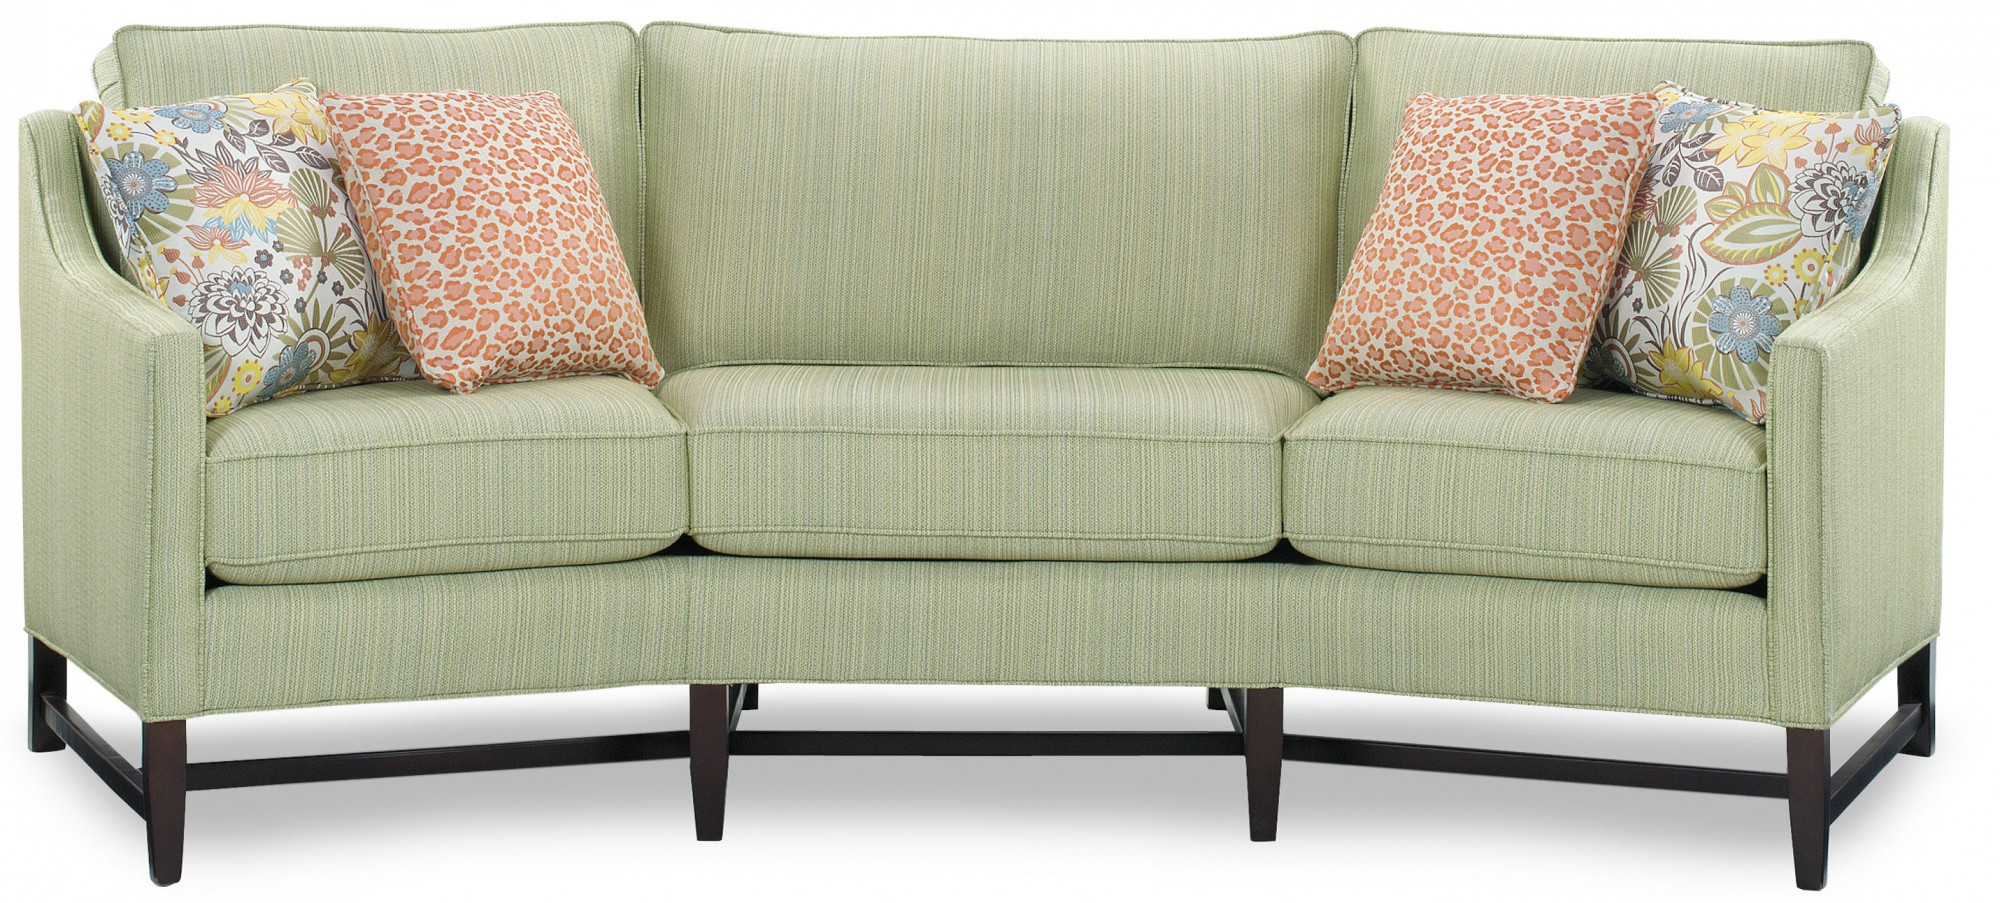 Sassy Curved Sofa 5102 100 With An Heirloom Finish And Covell Leaf Fabric.  Throw